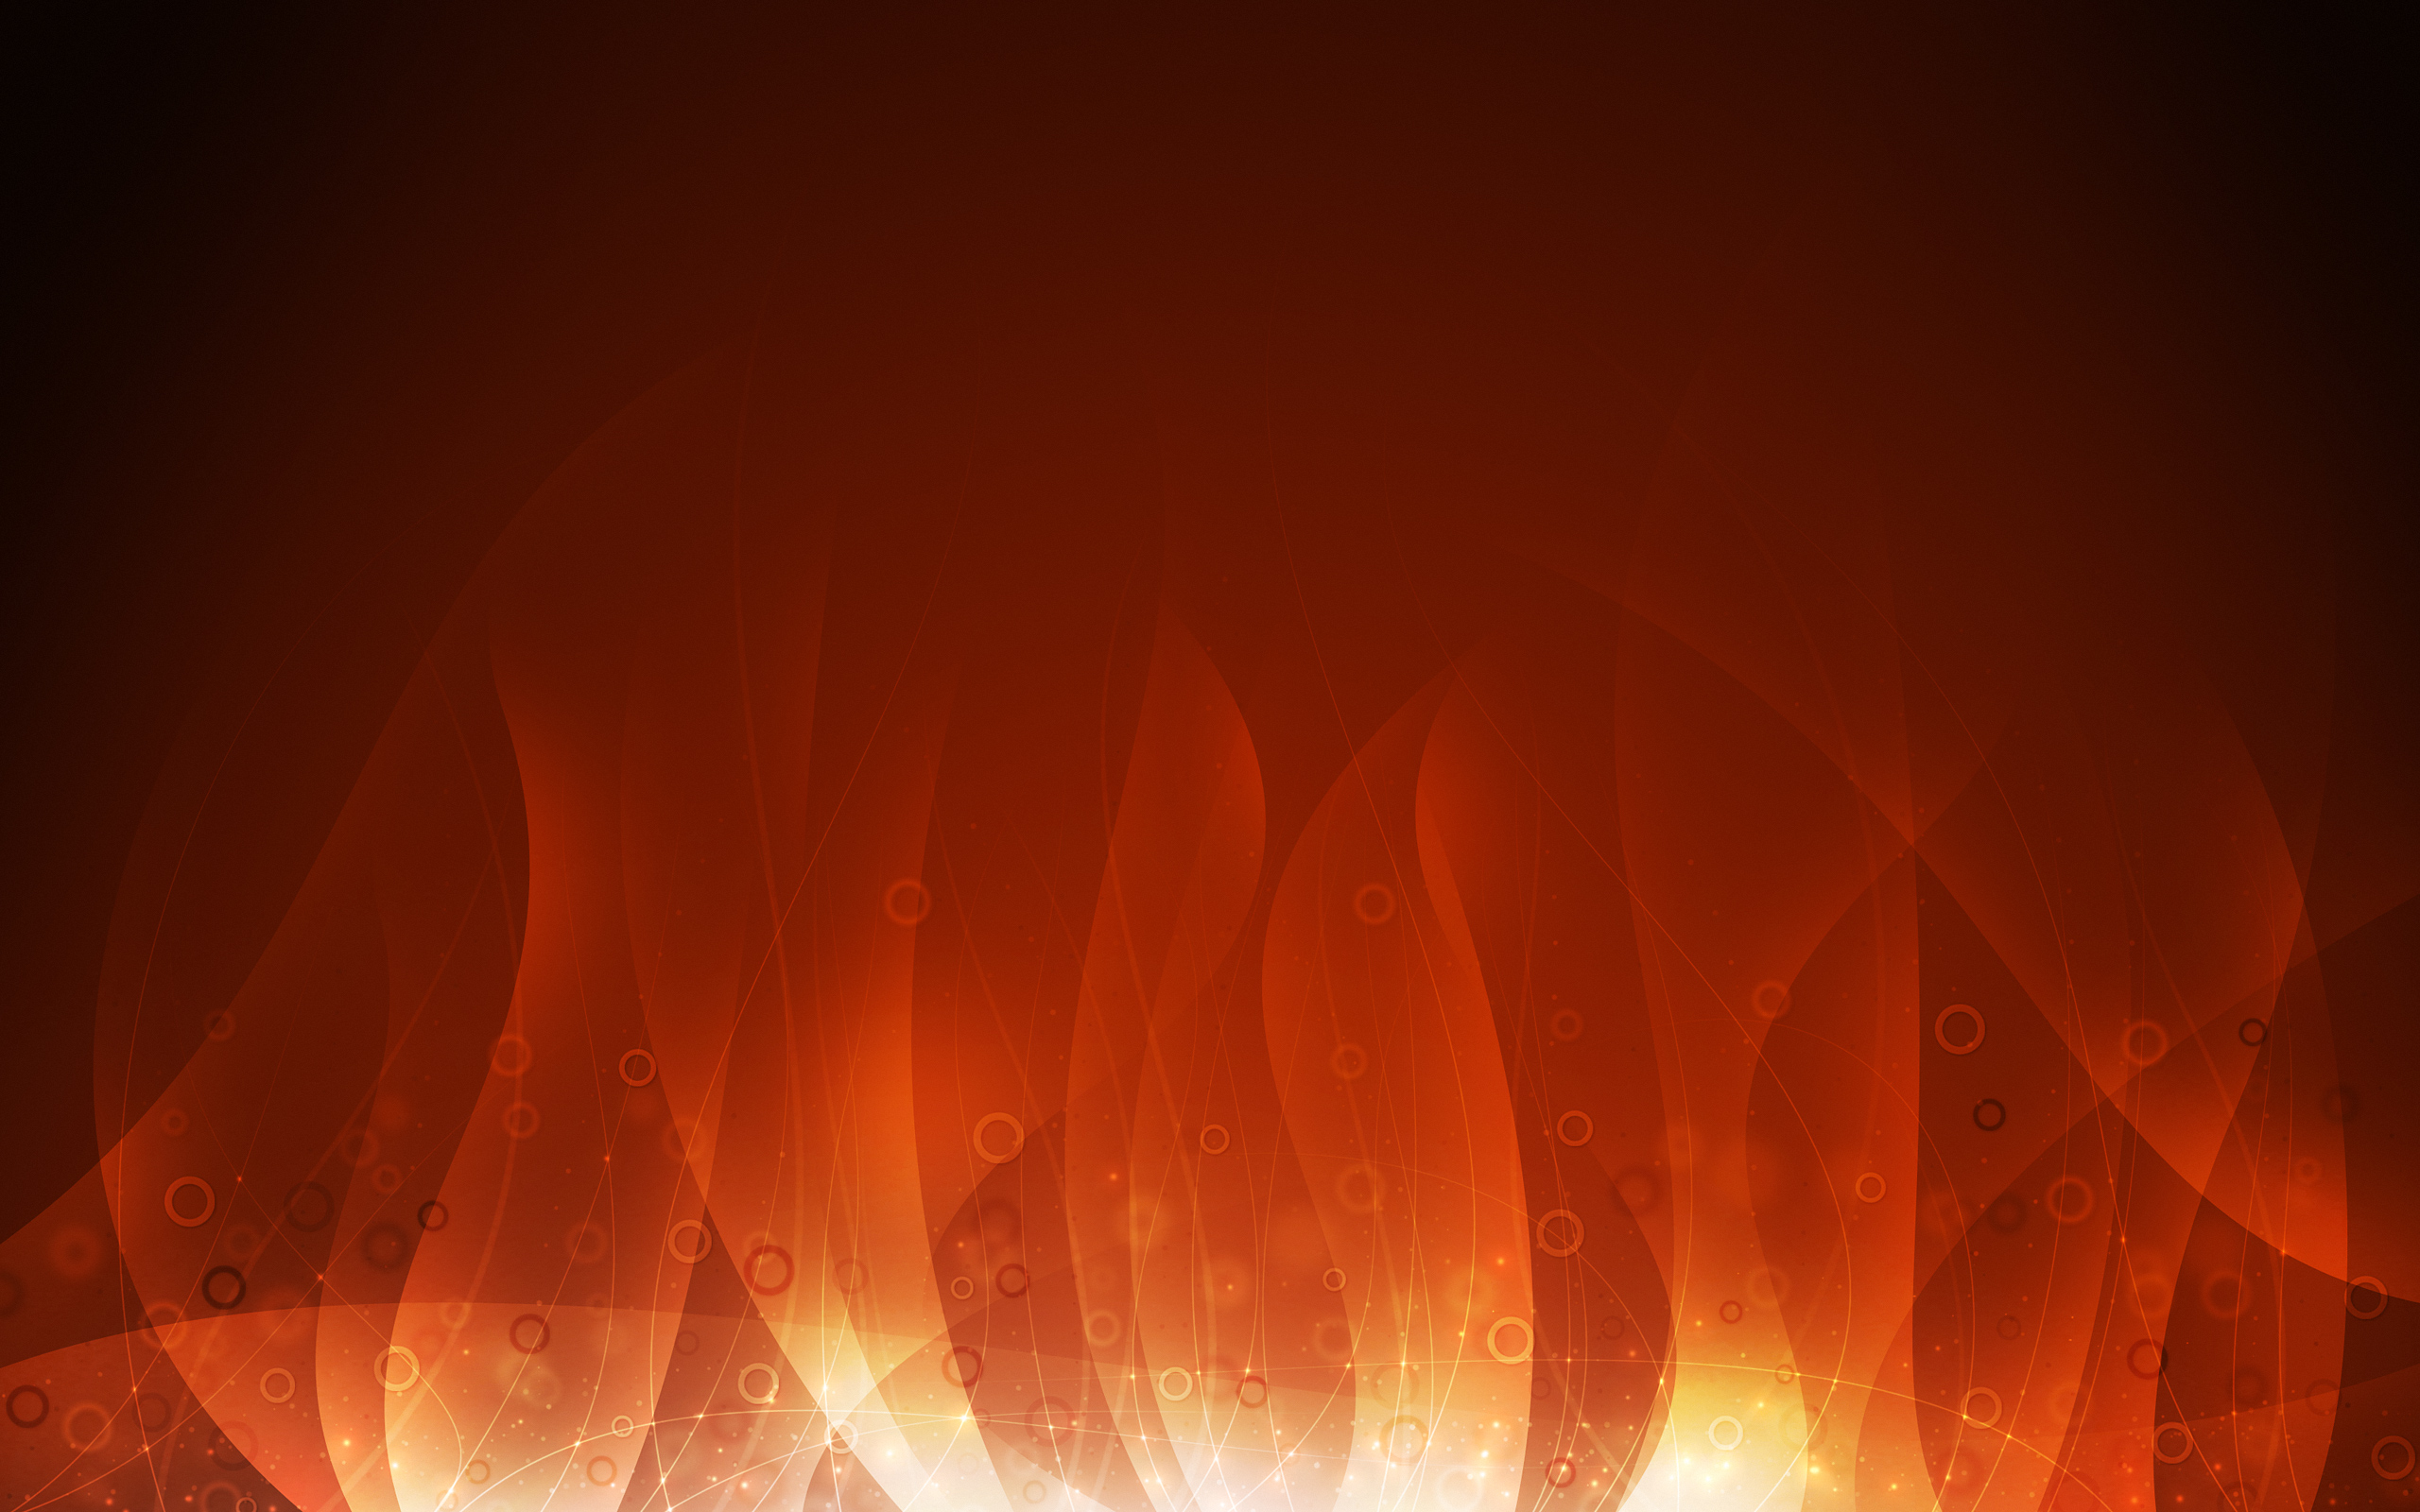 Golden flame Wallpapers HD Wallpapers 2560x1600